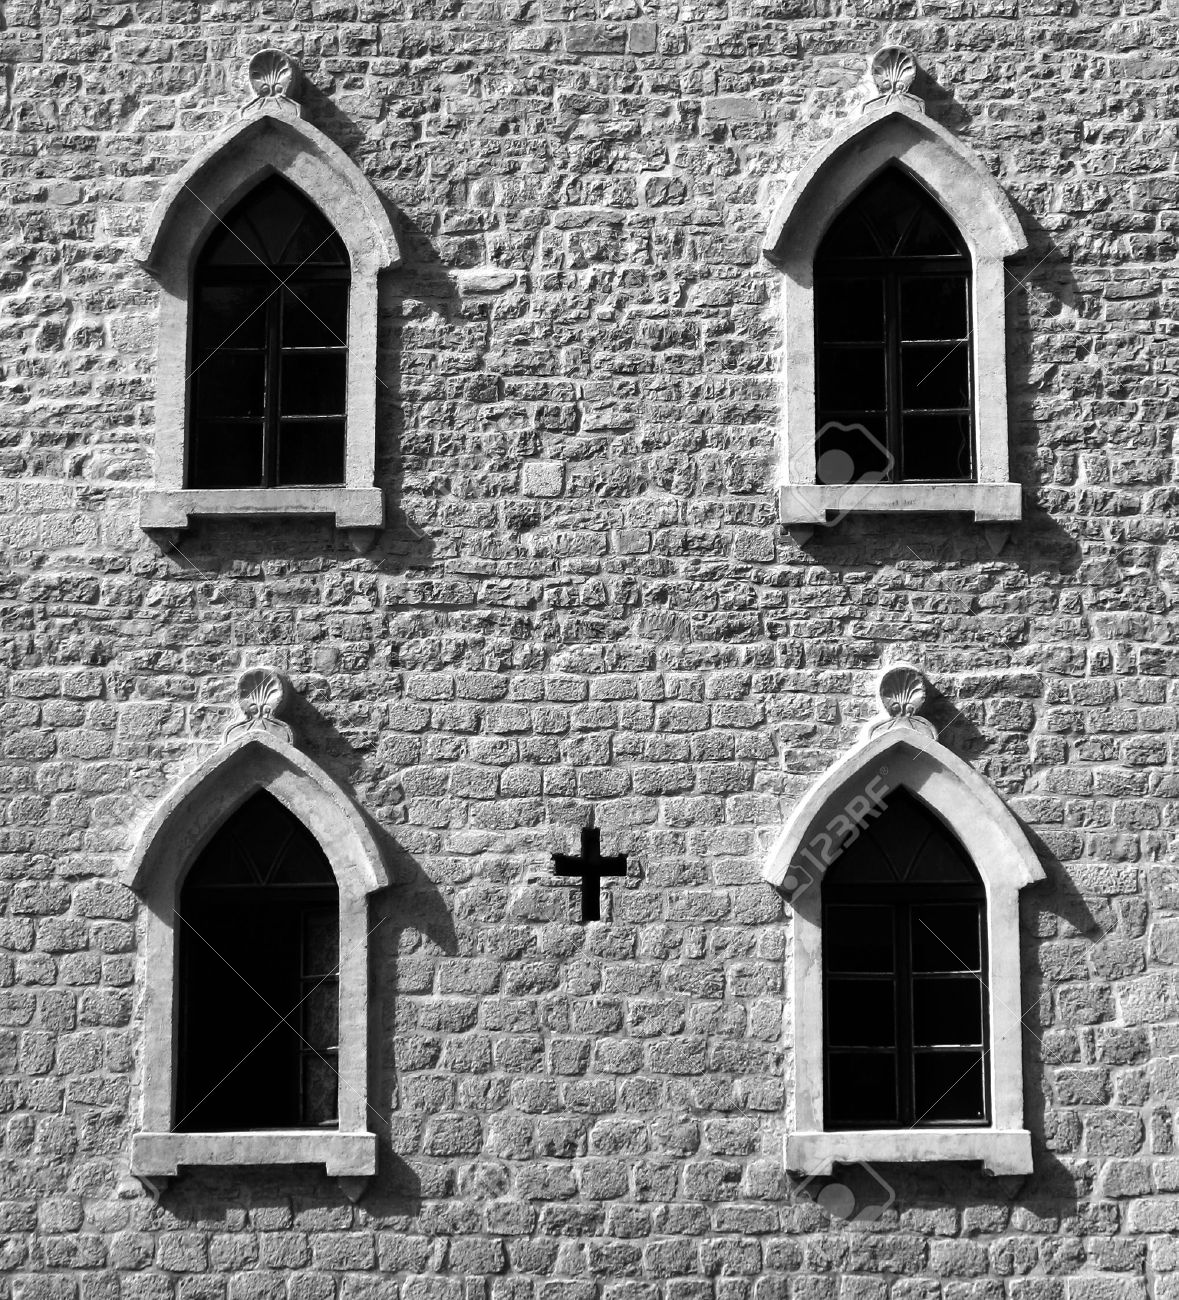 Brick Wall With Gothic Windows And Cross BW Image Stock Photo